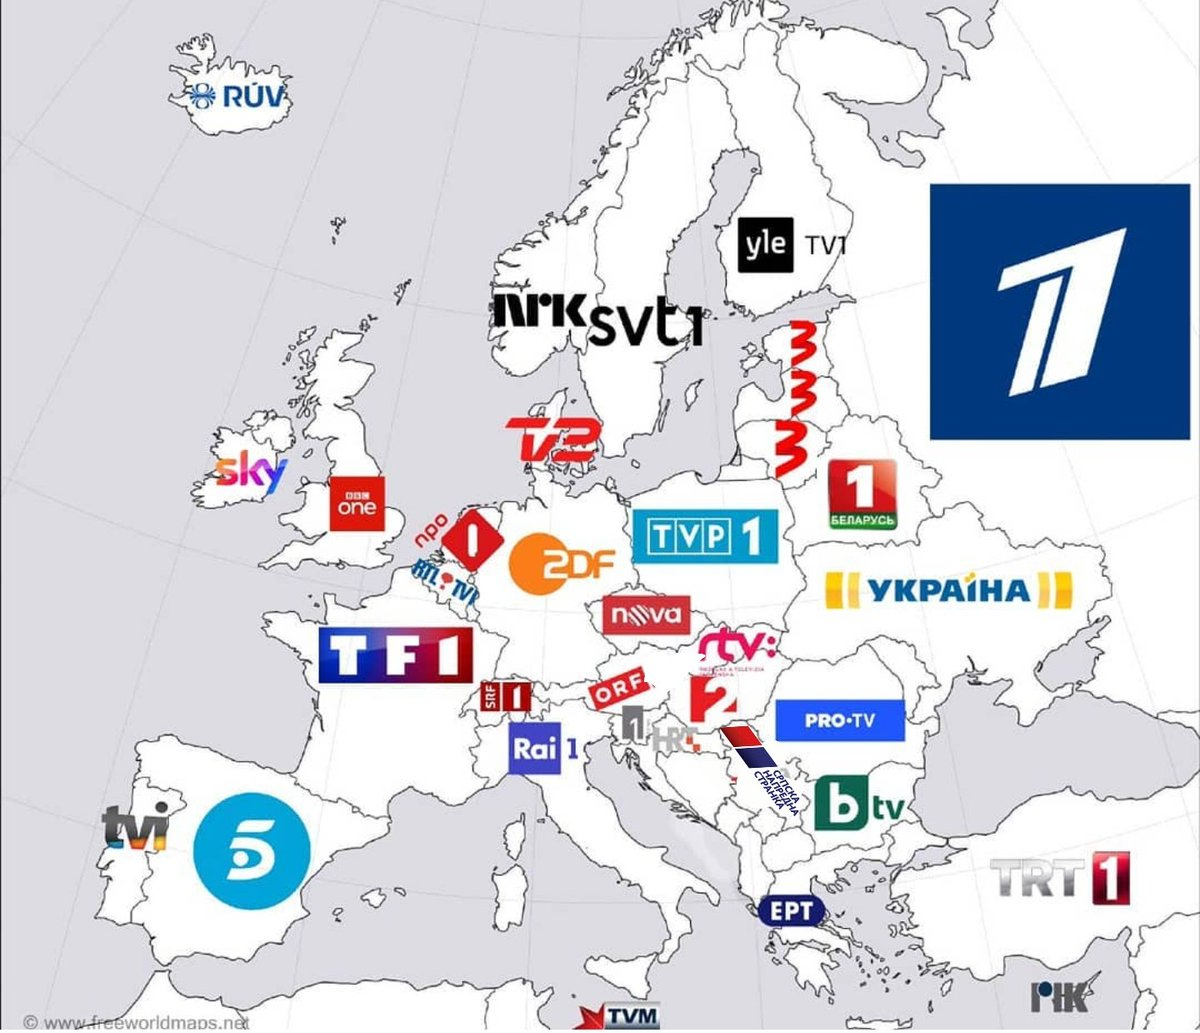 Most viewed TV channels in European countries: pic.twitter.com/EzxNr43VmL